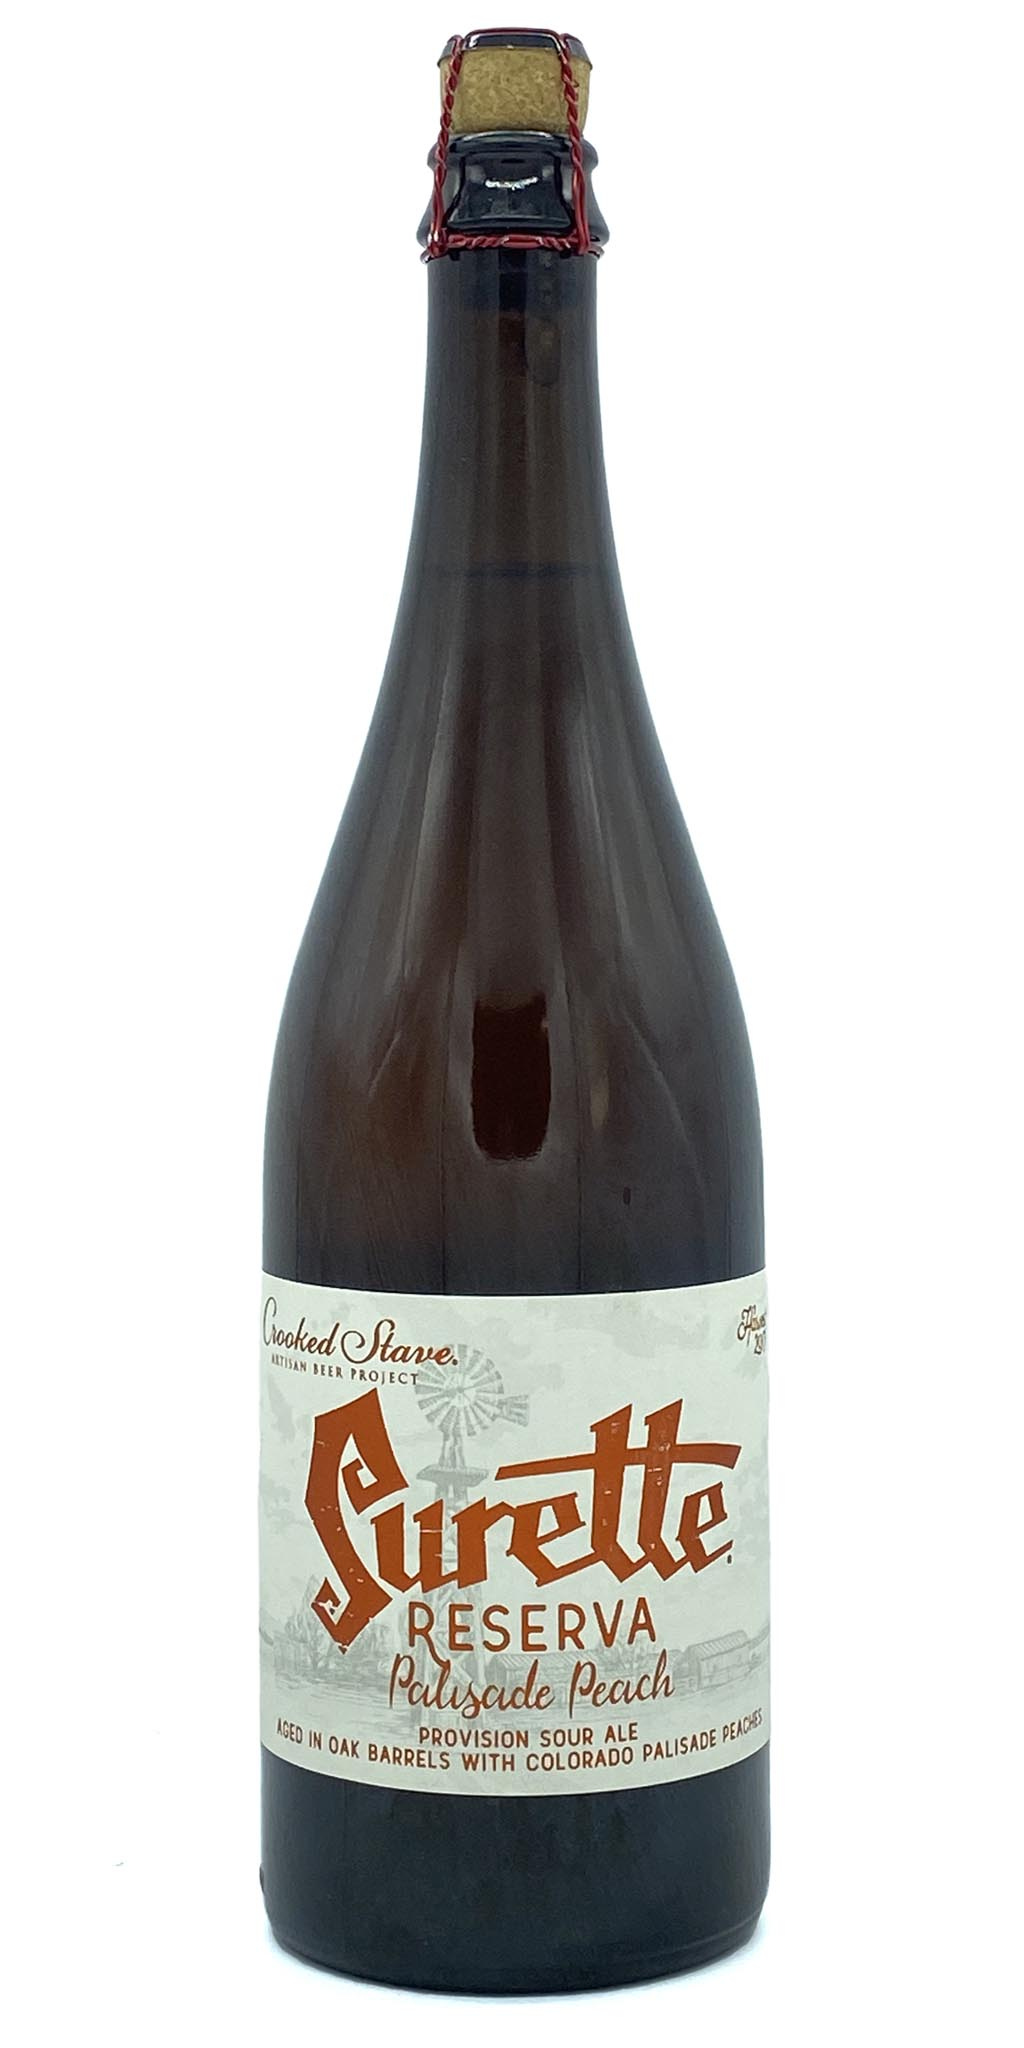 Crooked Stave - Surette Reserva Palisade Peach 2017